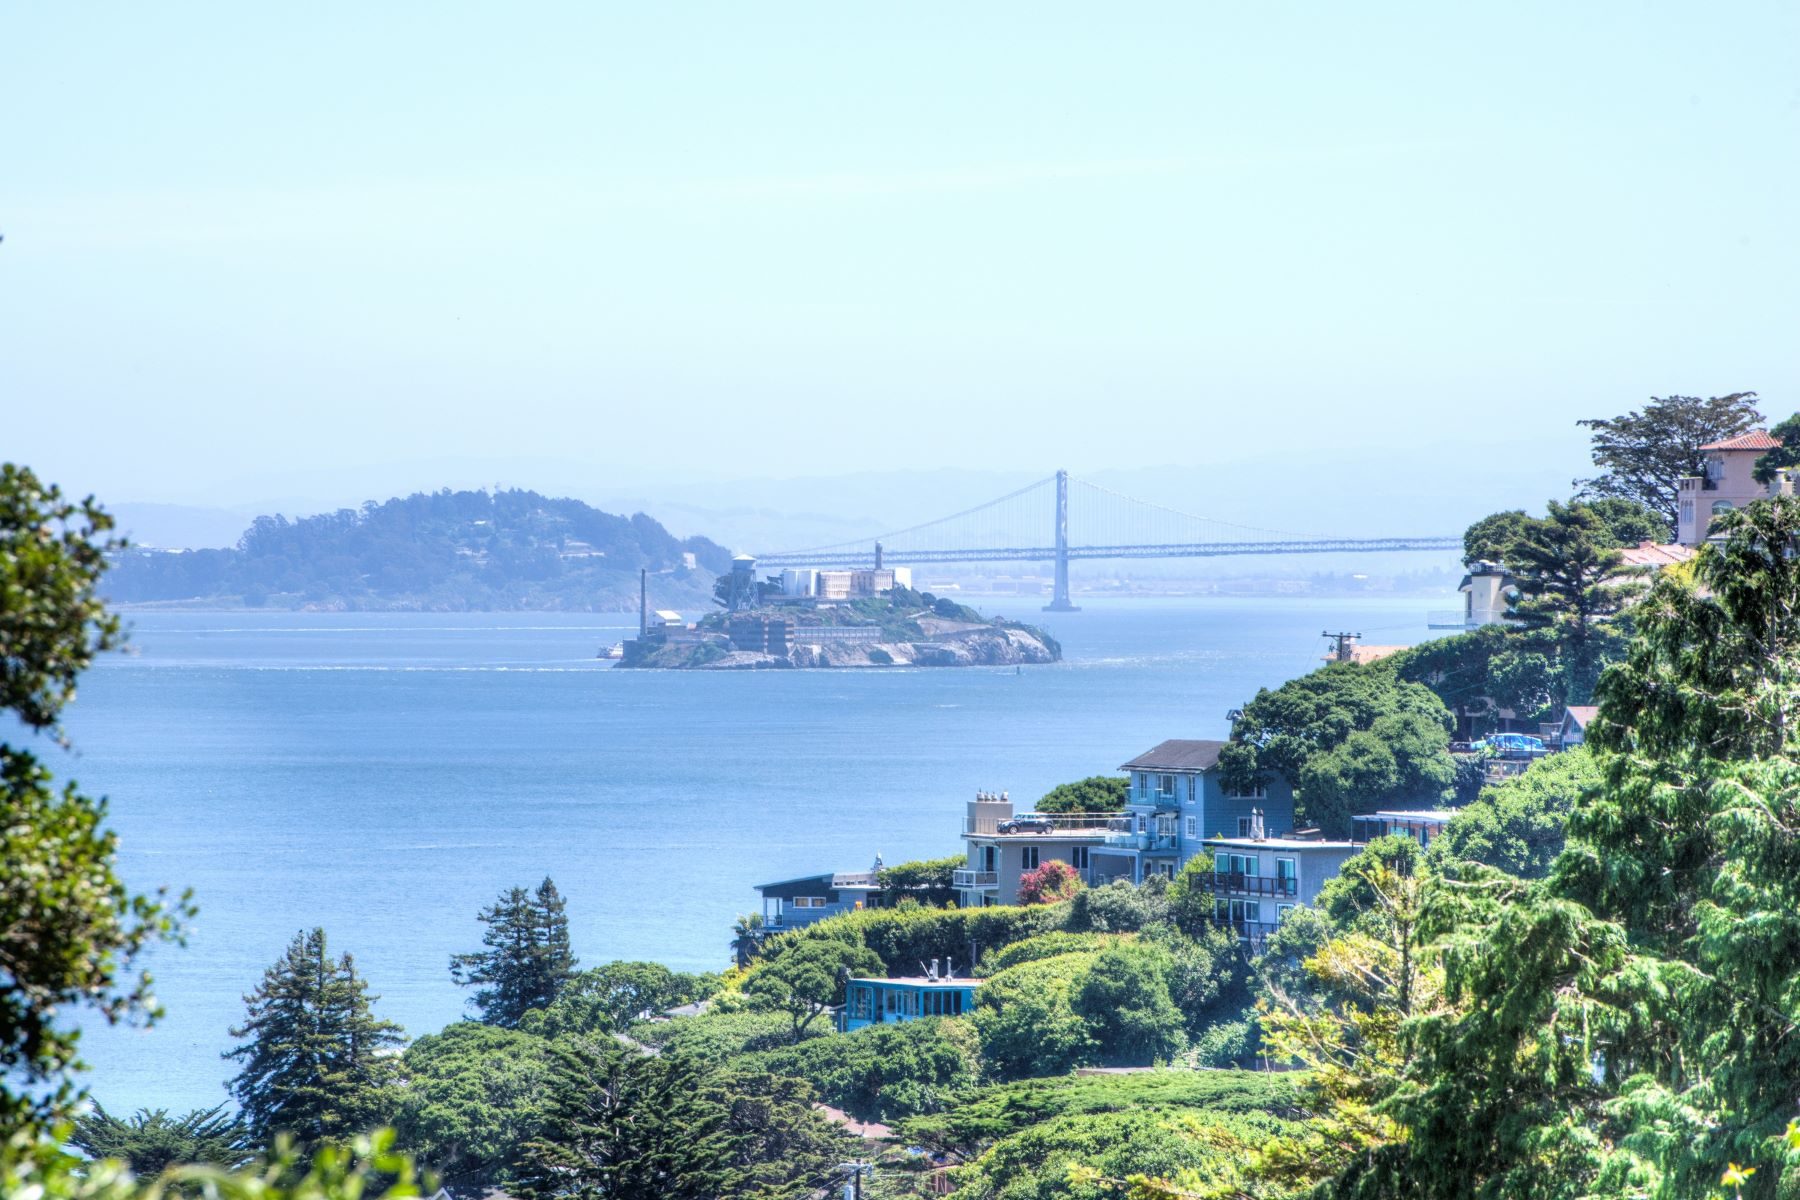 Single Family Home for Sale at Fabulous Newer Construction with Bay Views and Garage 76 Crescent Ave Sausalito, California 94965 United States